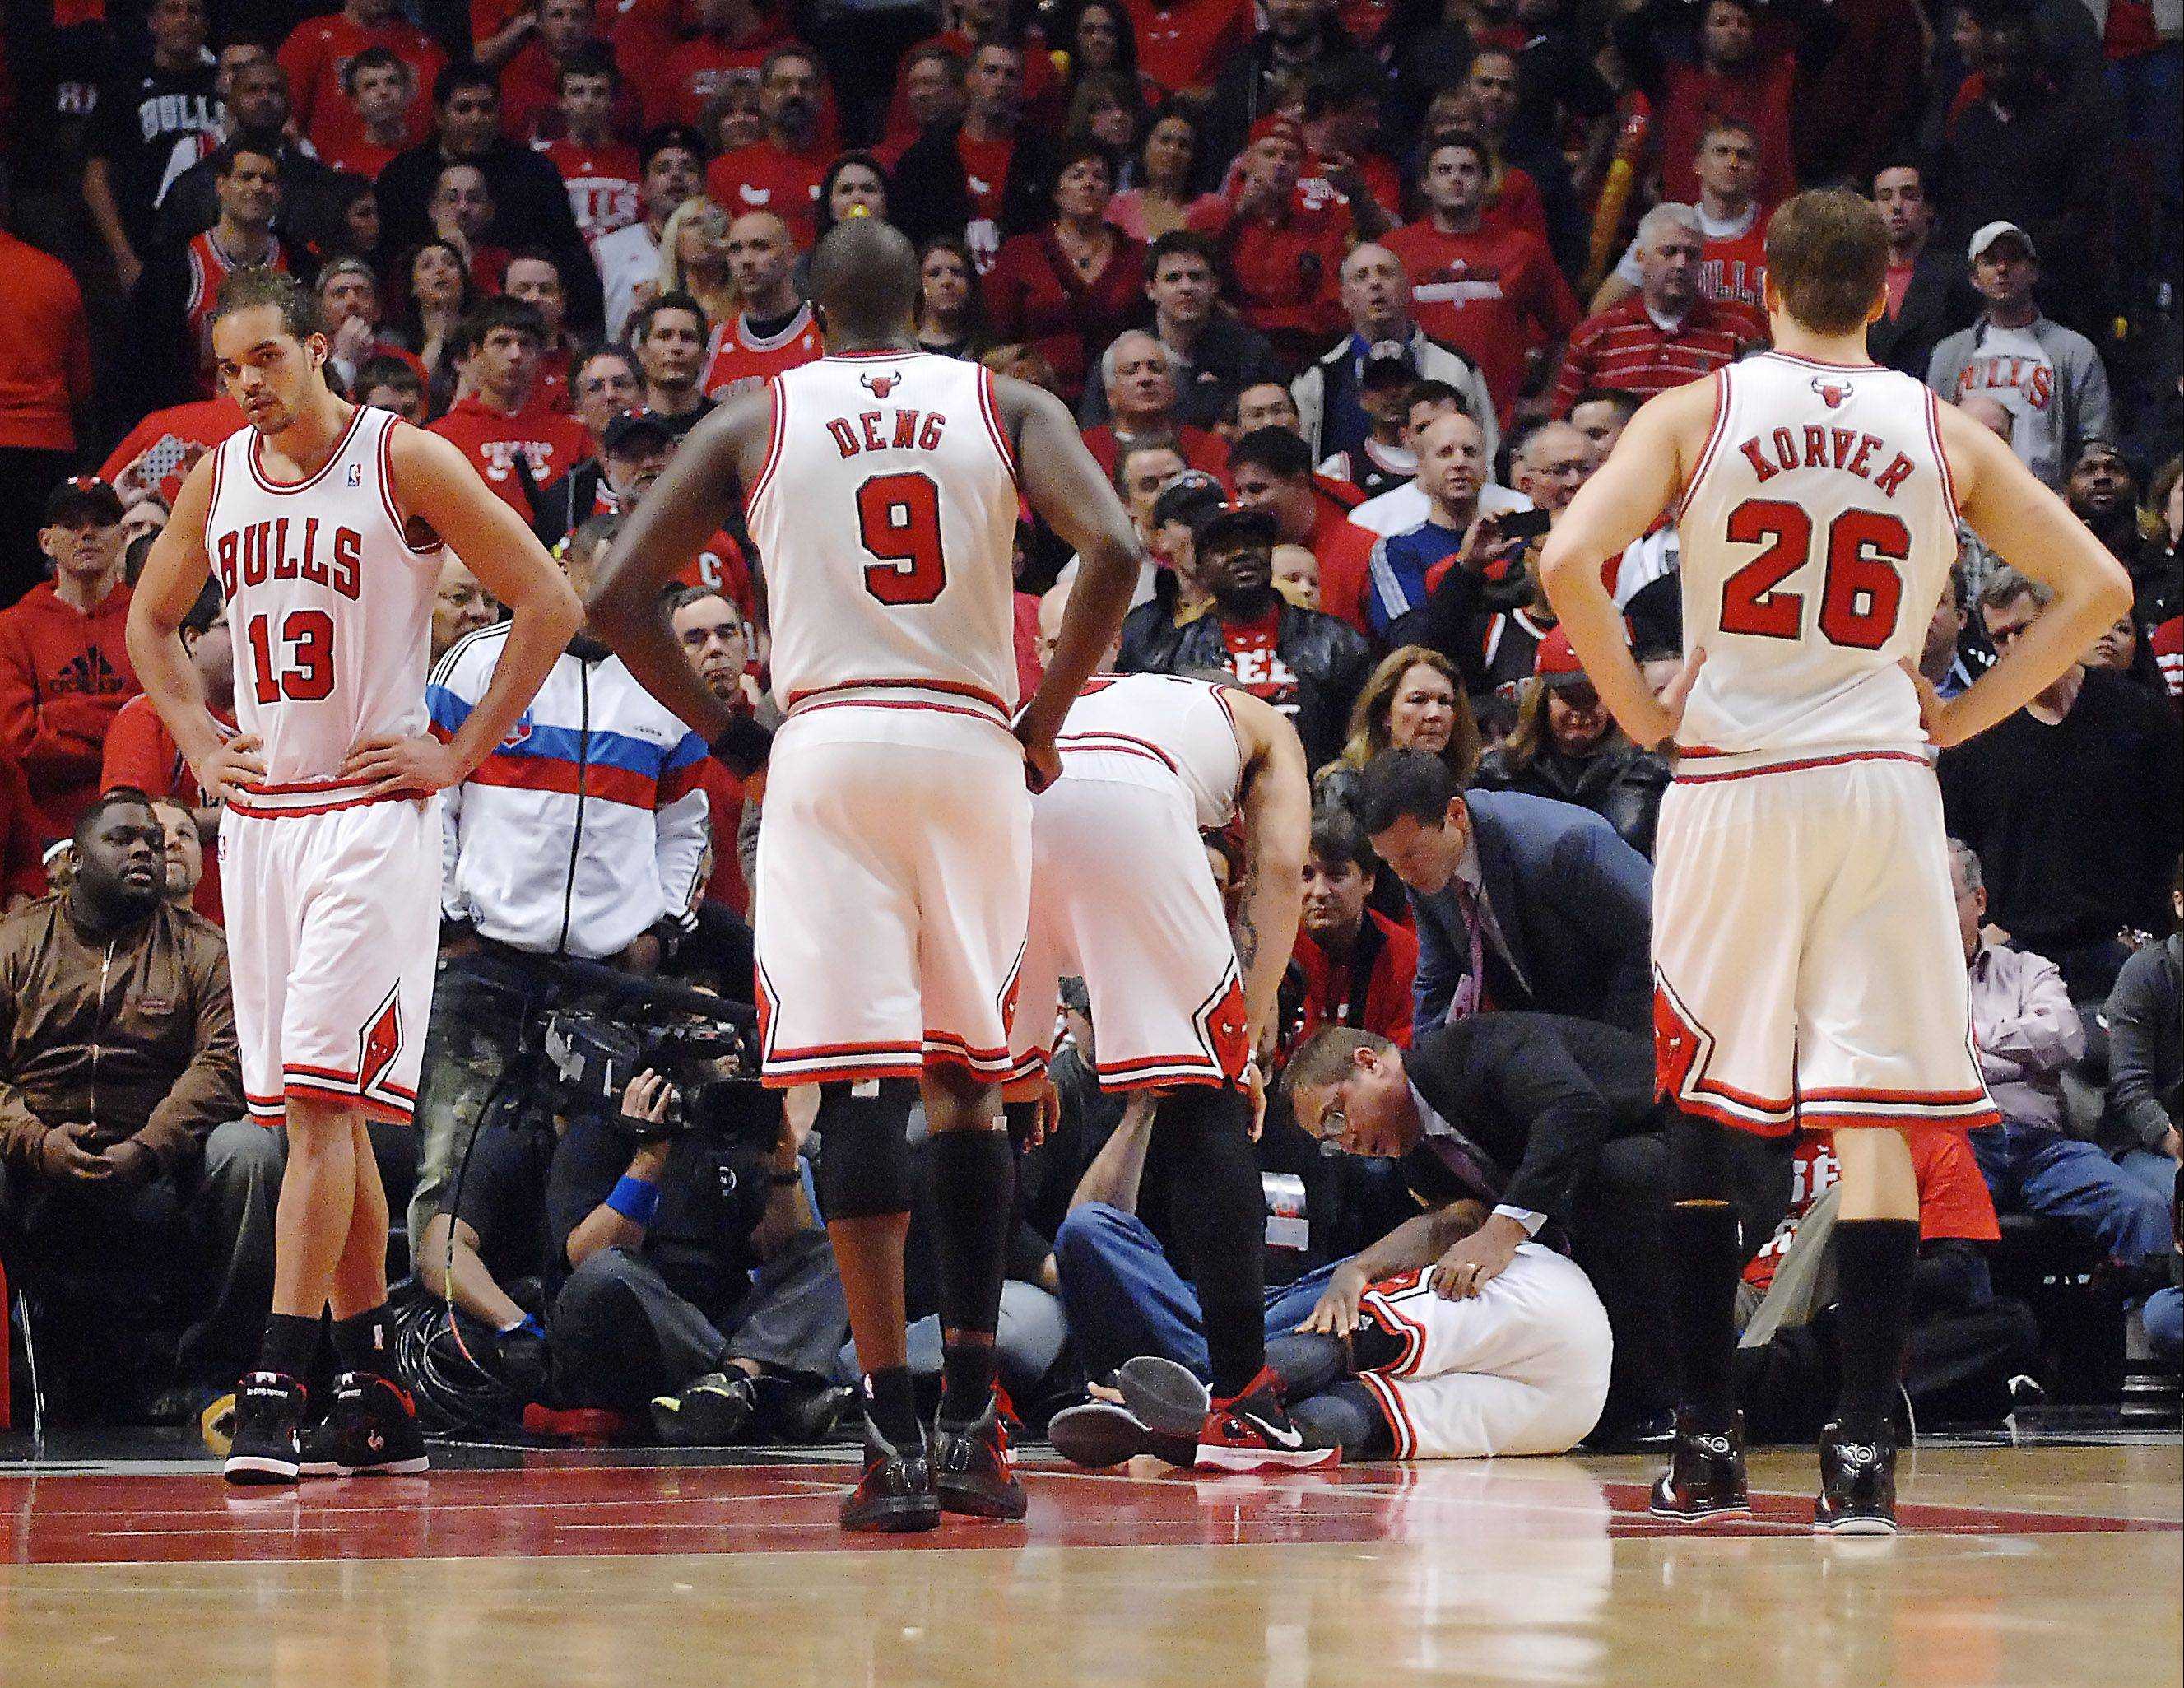 The Bulls react after Derrick Rose injures his knee late in the fourth quarter of their 103-91 win Saturday over the Sixers at the United Center.